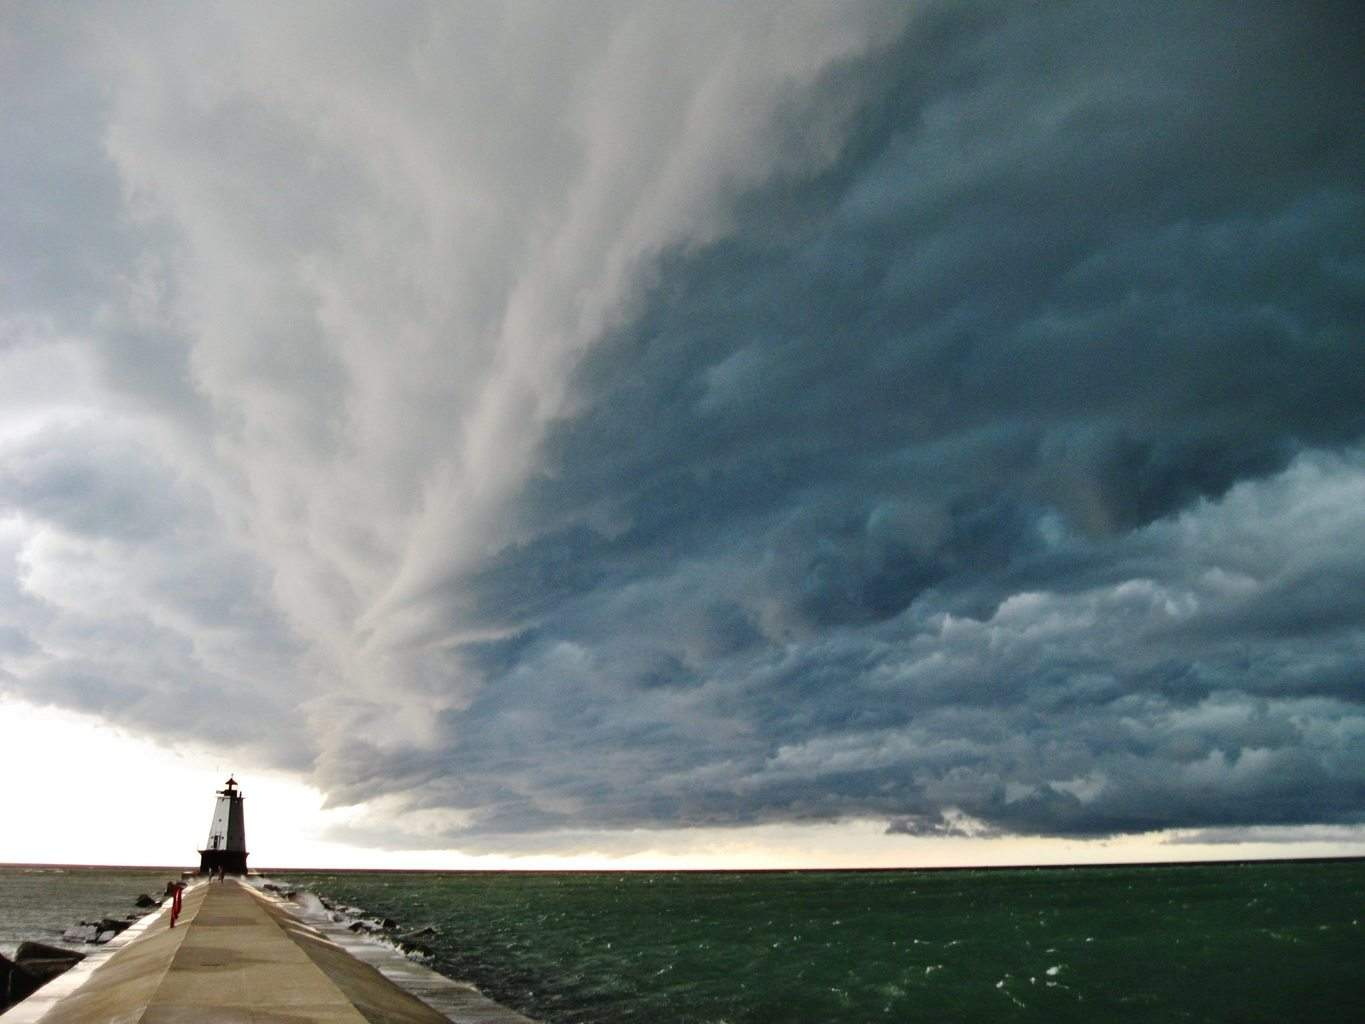 Massive storm approaches a lonely lighthouse in Ludington, MI last Sunday. Storms over water seem more raw and powerful, somehow, with spray being kicked up from the waves and the wind almost knocking me over as I took these shots!